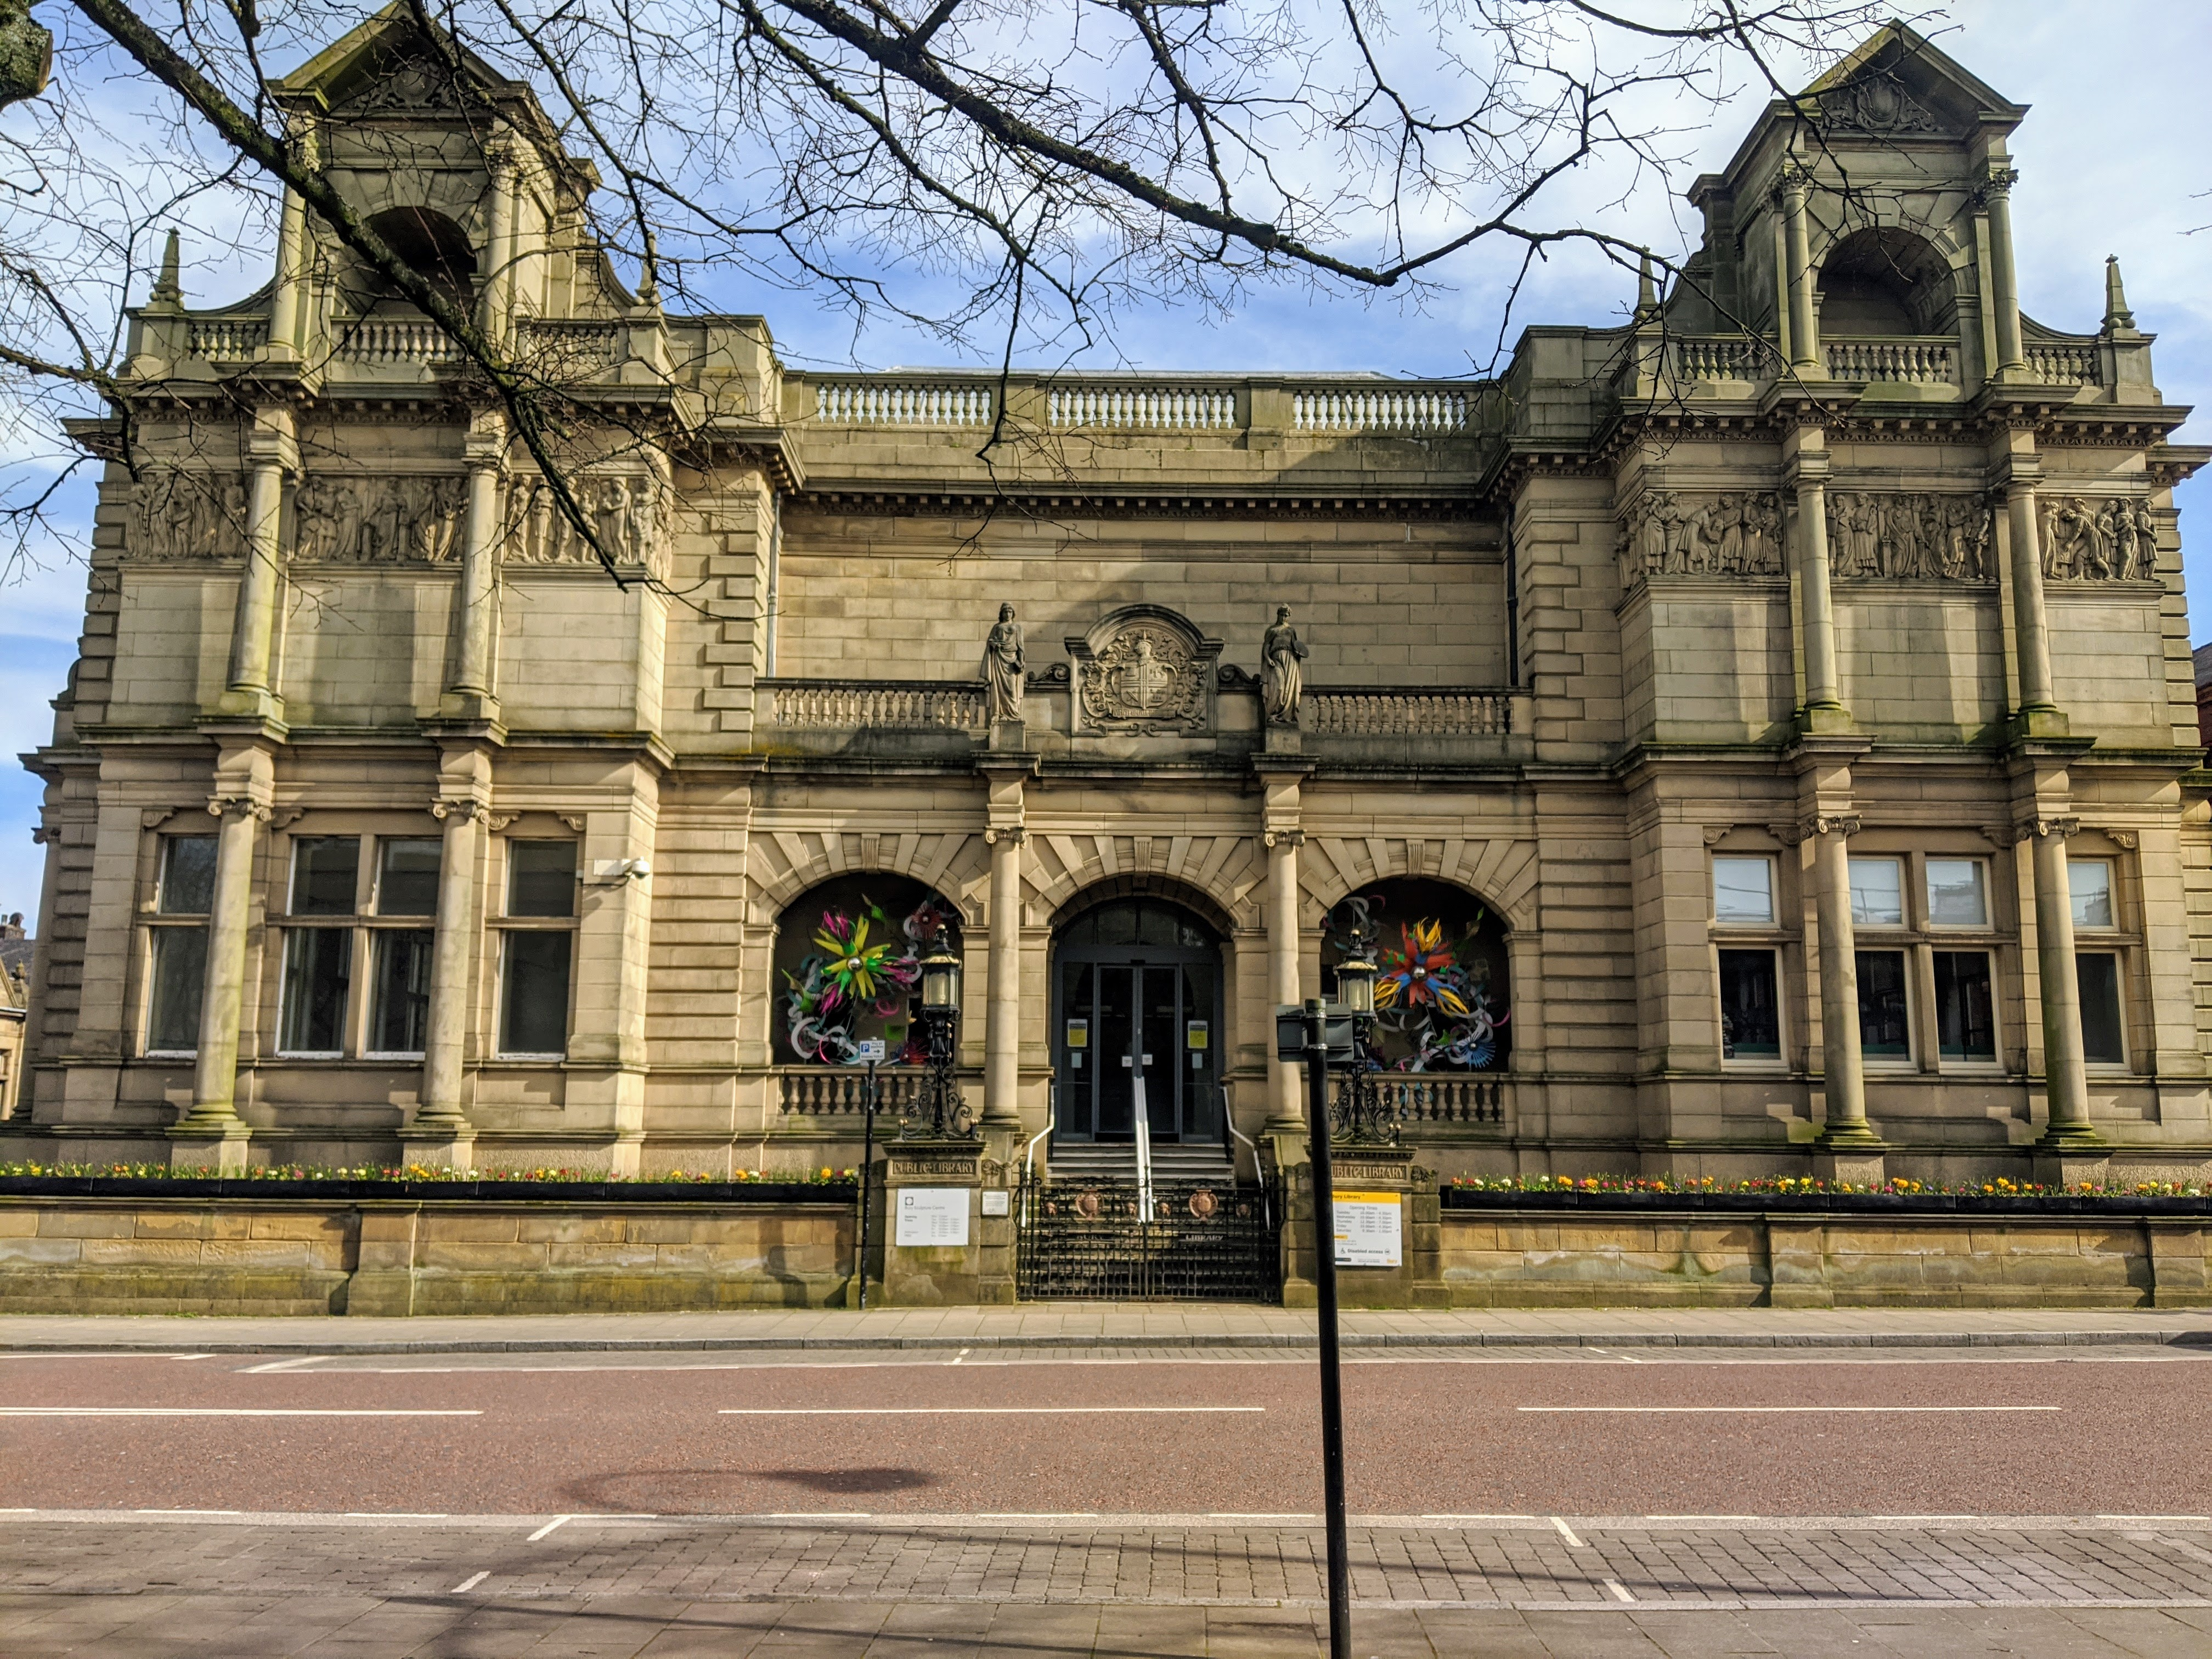 Bury Library from the outside